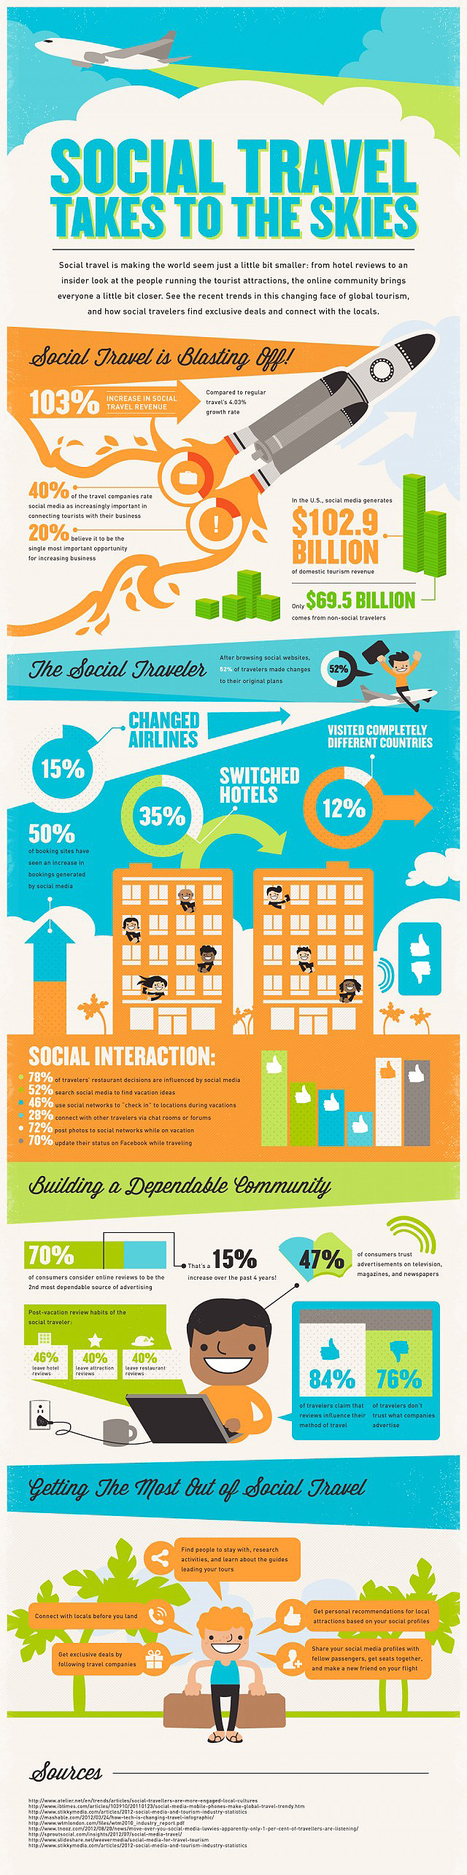 How Social Media Affects Your Travel Plans [Infographic] | Local Social Media Marketing | Scoop.it